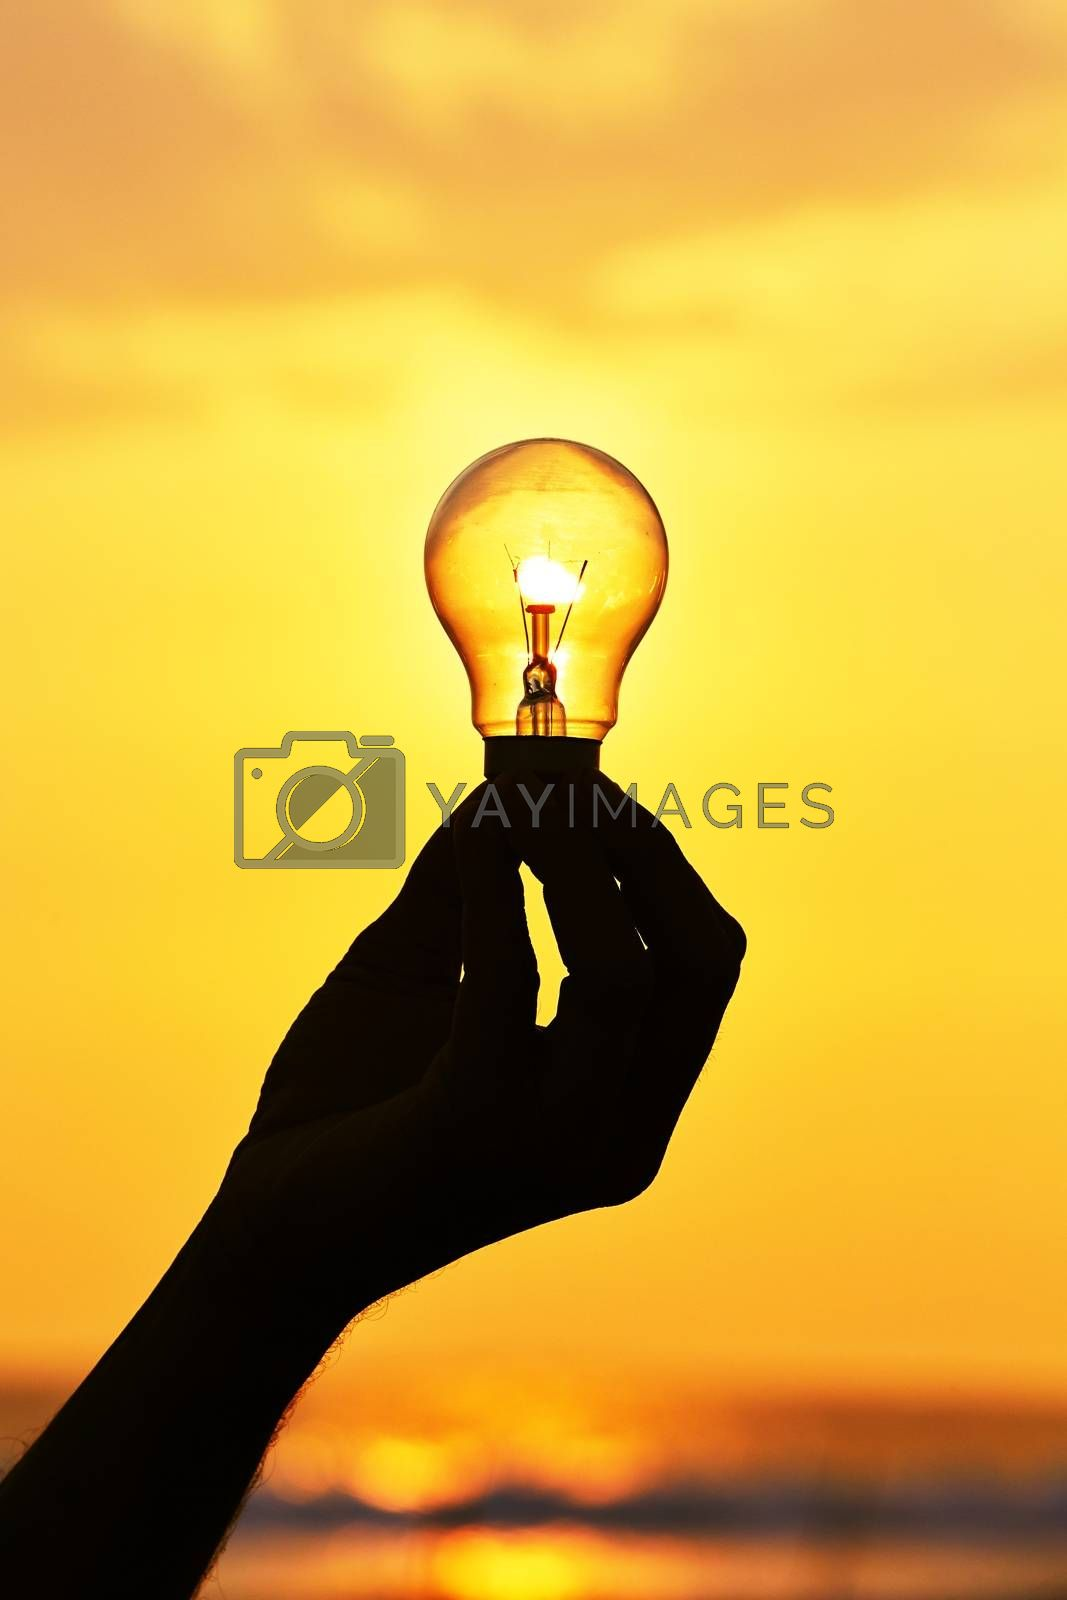 Silhouette of a light bulb at sunset.